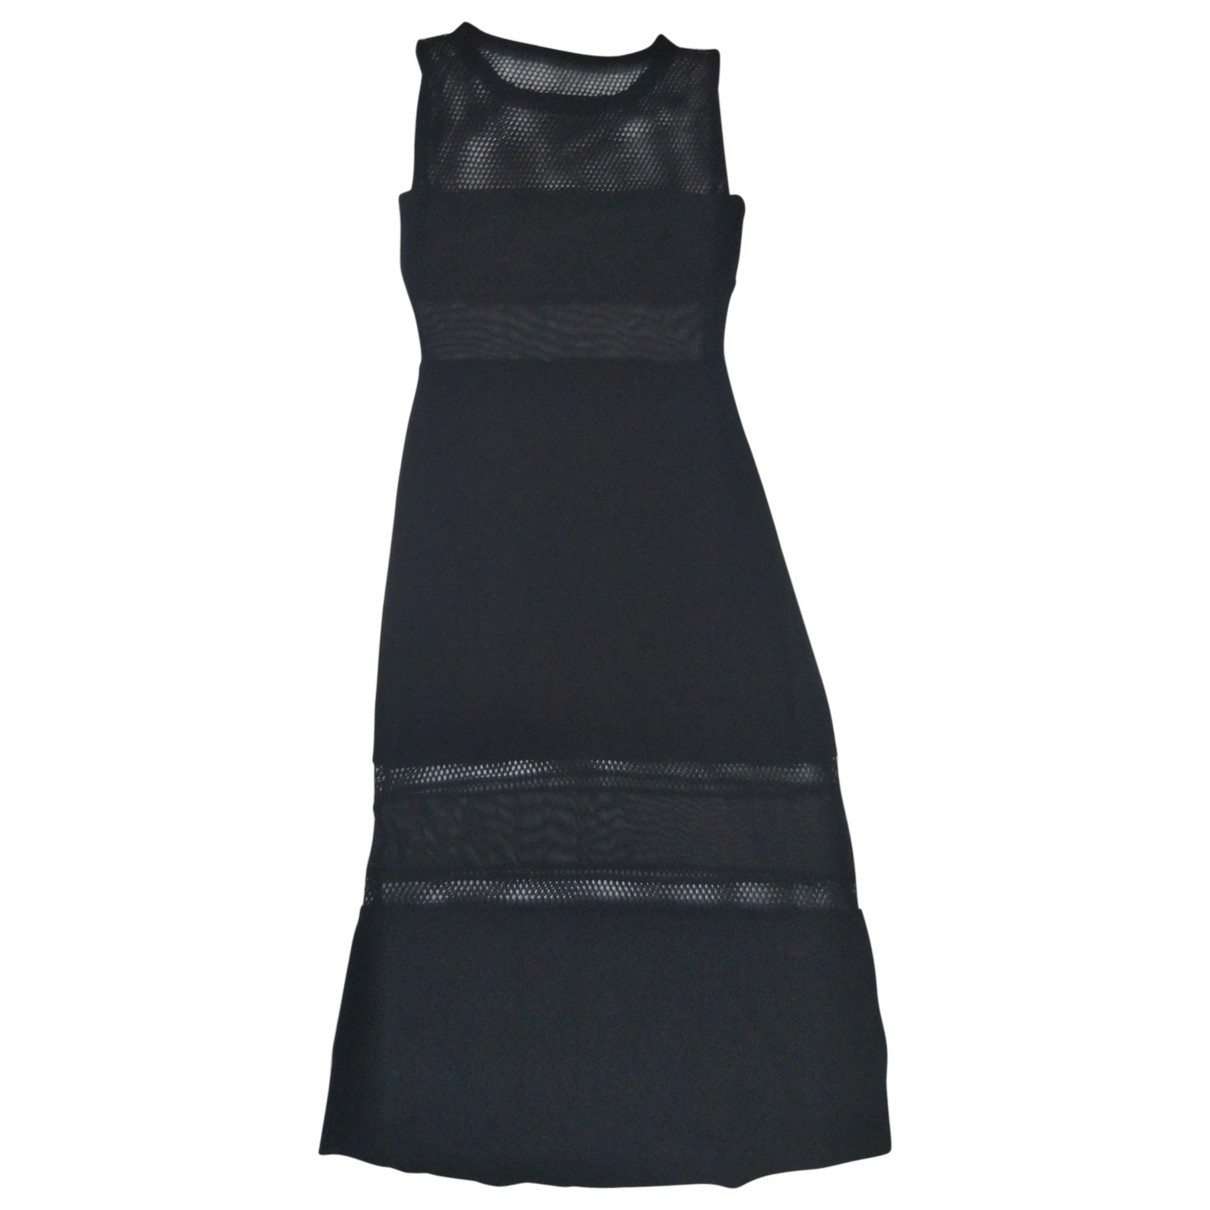 French Connection \N Black Cotton dress for Women 10 UK